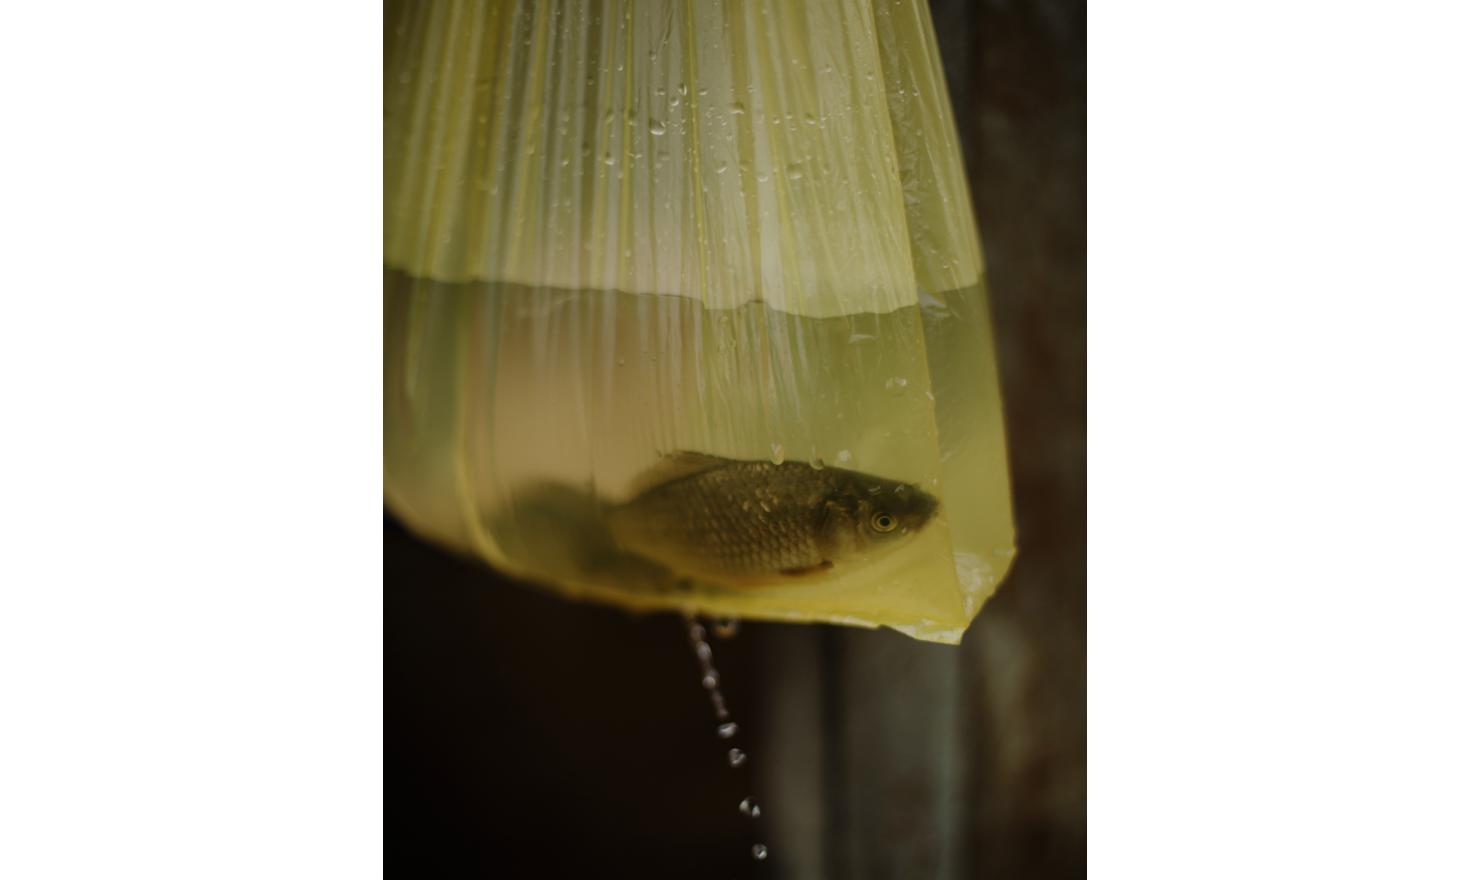 Gorelovka. In the yard of an Adjarian family, a fish in a holed plastic bag.